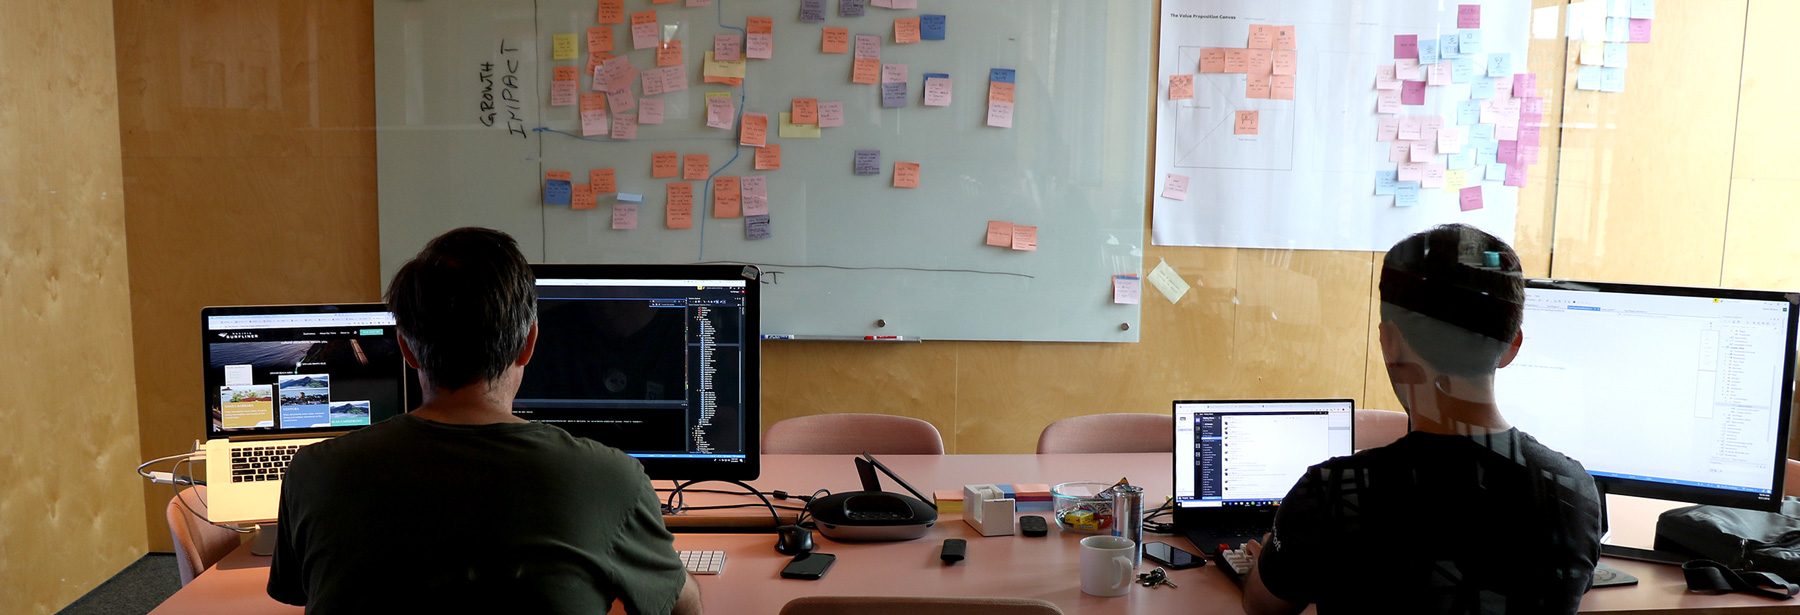 Two developers working in a conference room with post-it notes on the wall.